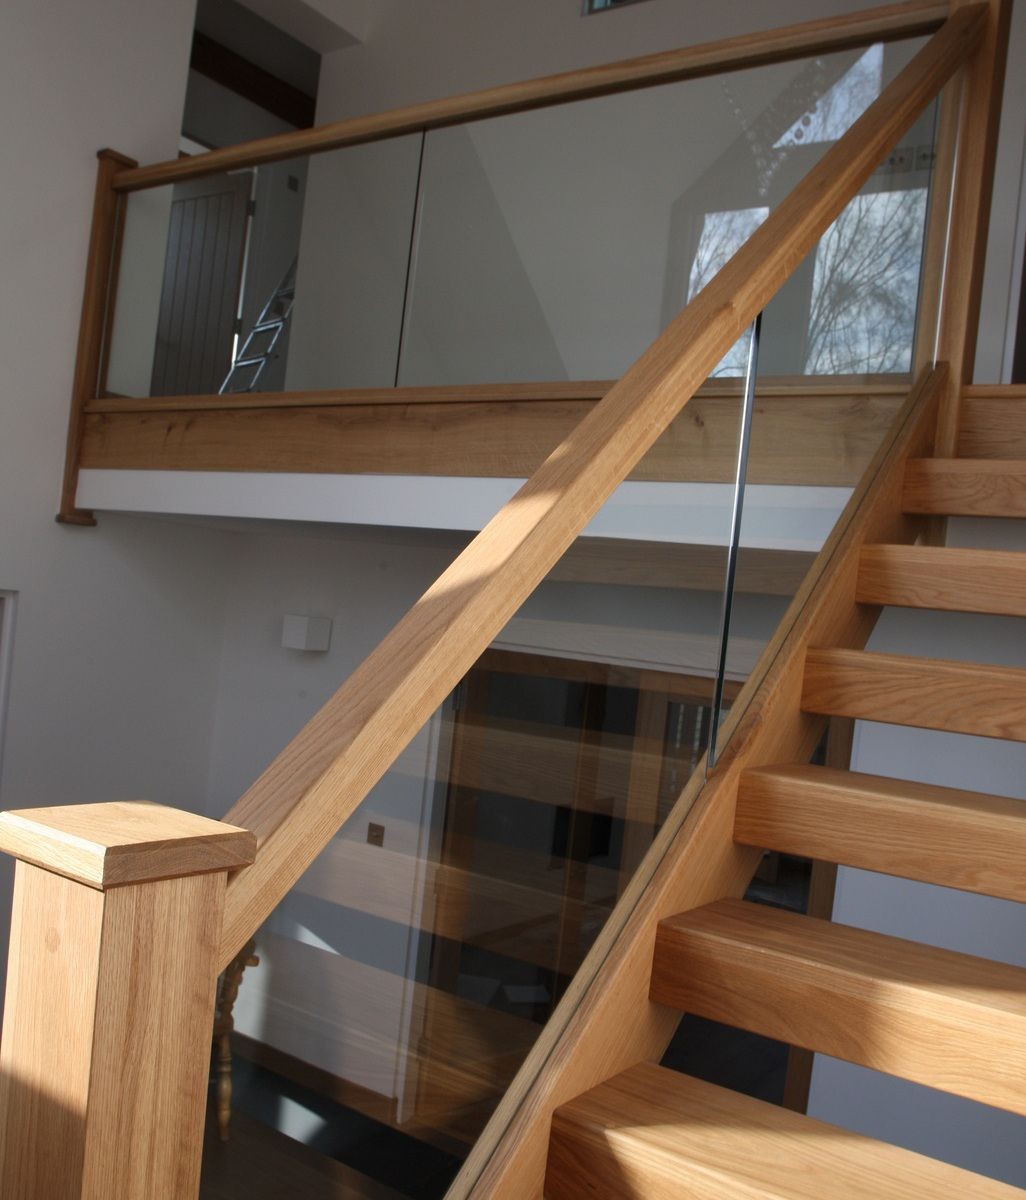 stairbox think these are the stairs railings oak stairs rh pinterest com wooden stairs railing design with glass wooden stair railing with glass